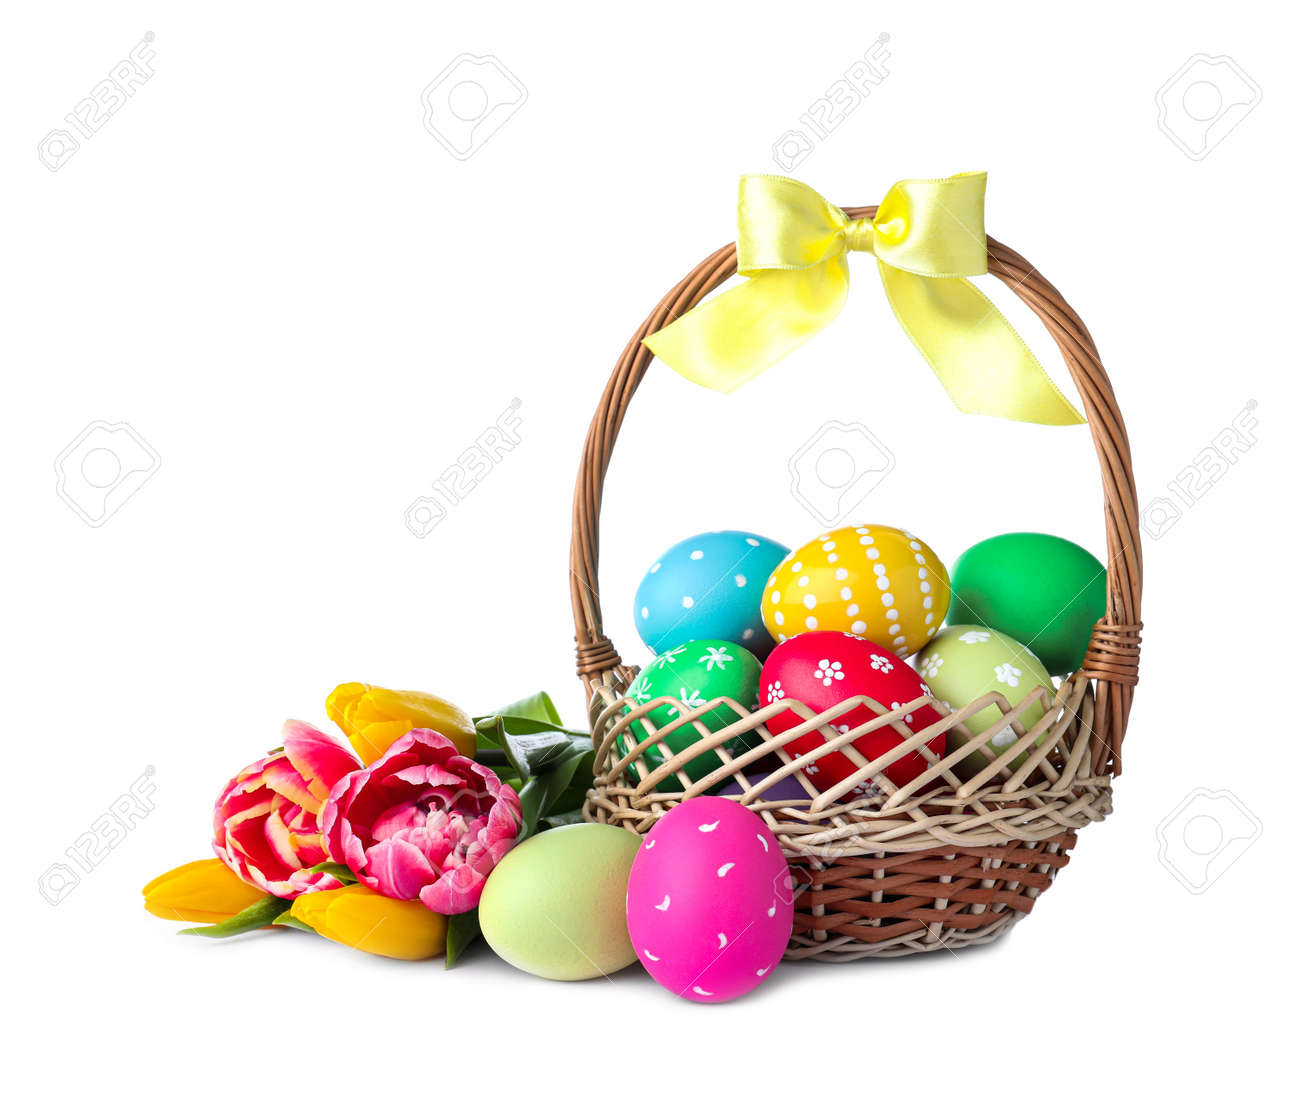 Wicker basket with bright painted Easter eggs and spring flowers on white background - 165596940